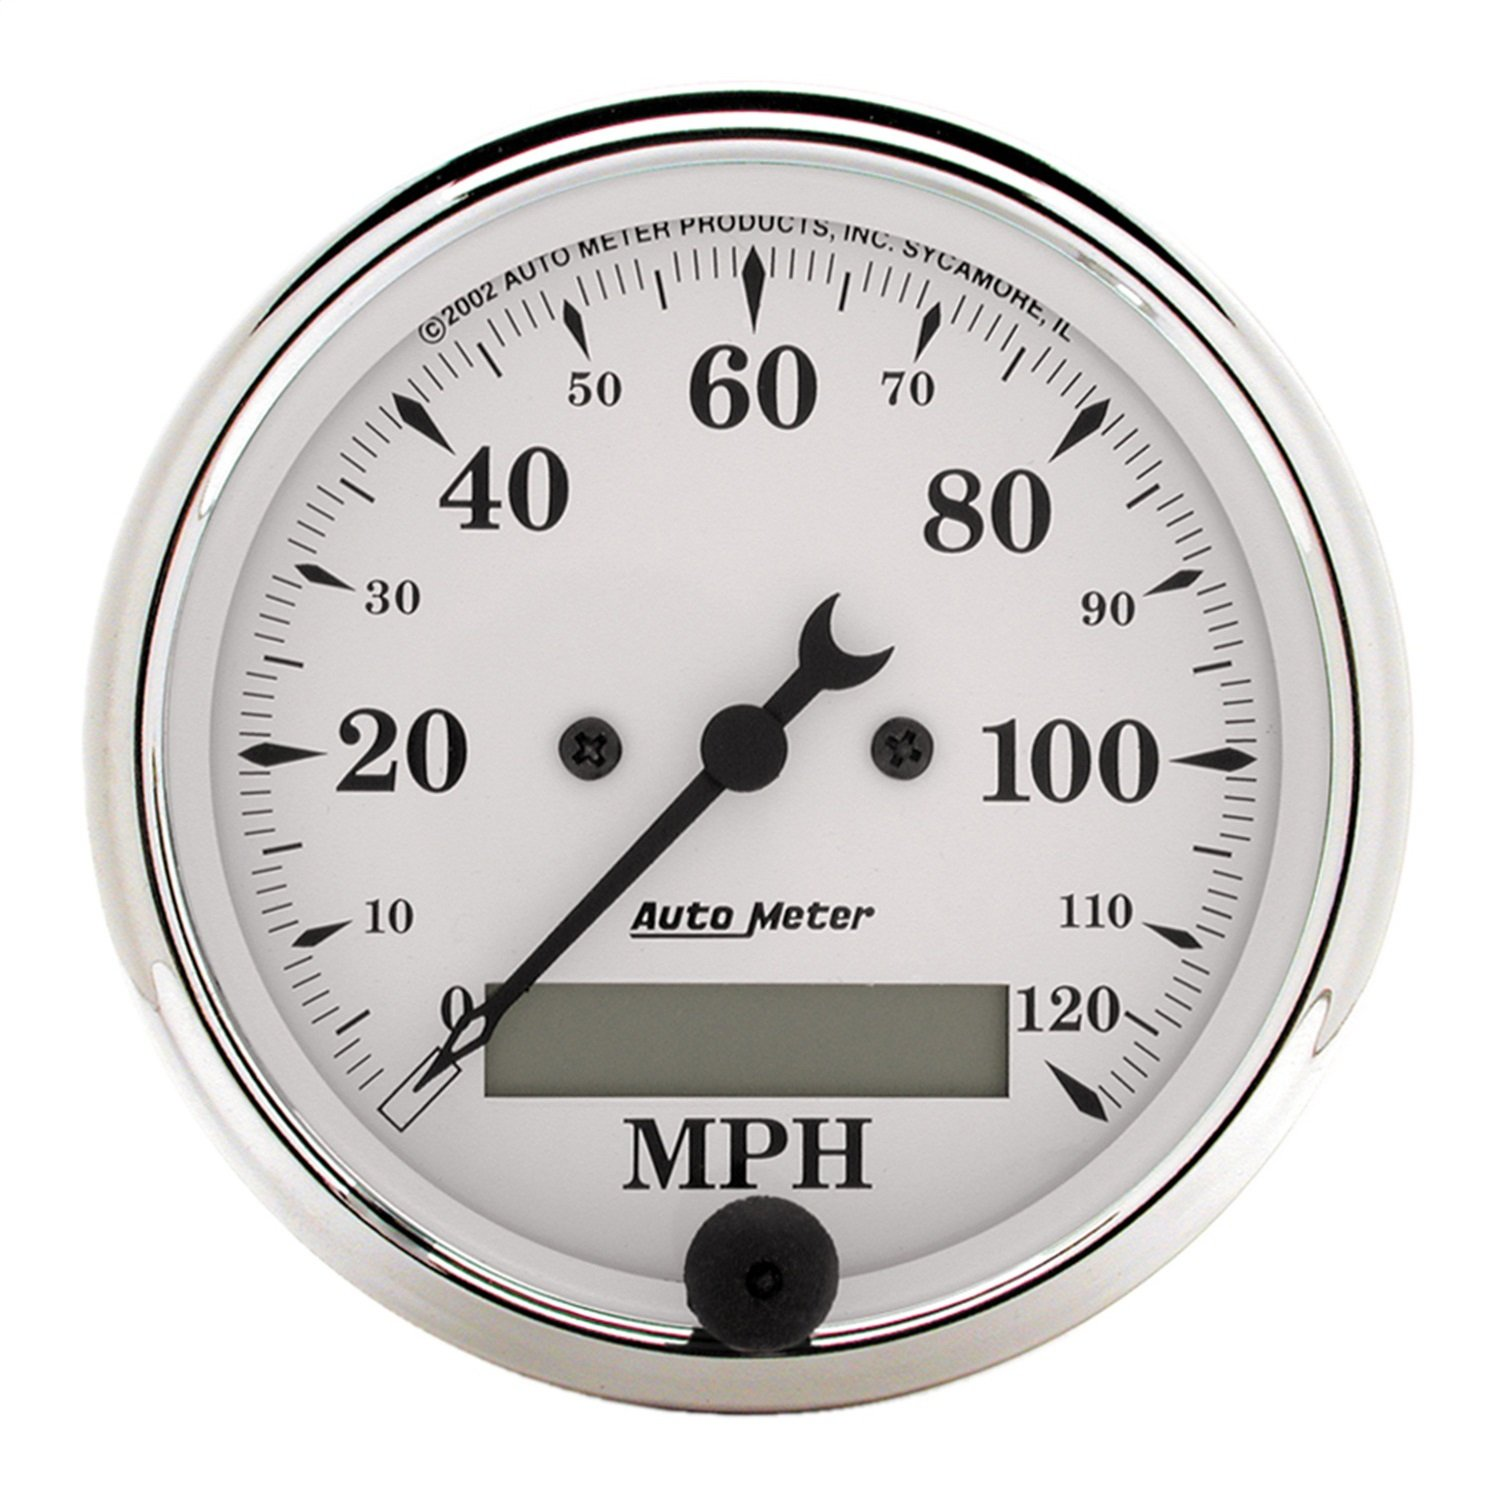 AUTO METER 1688 Old TYME White Electric Programmable Speedometer by AUTO METER